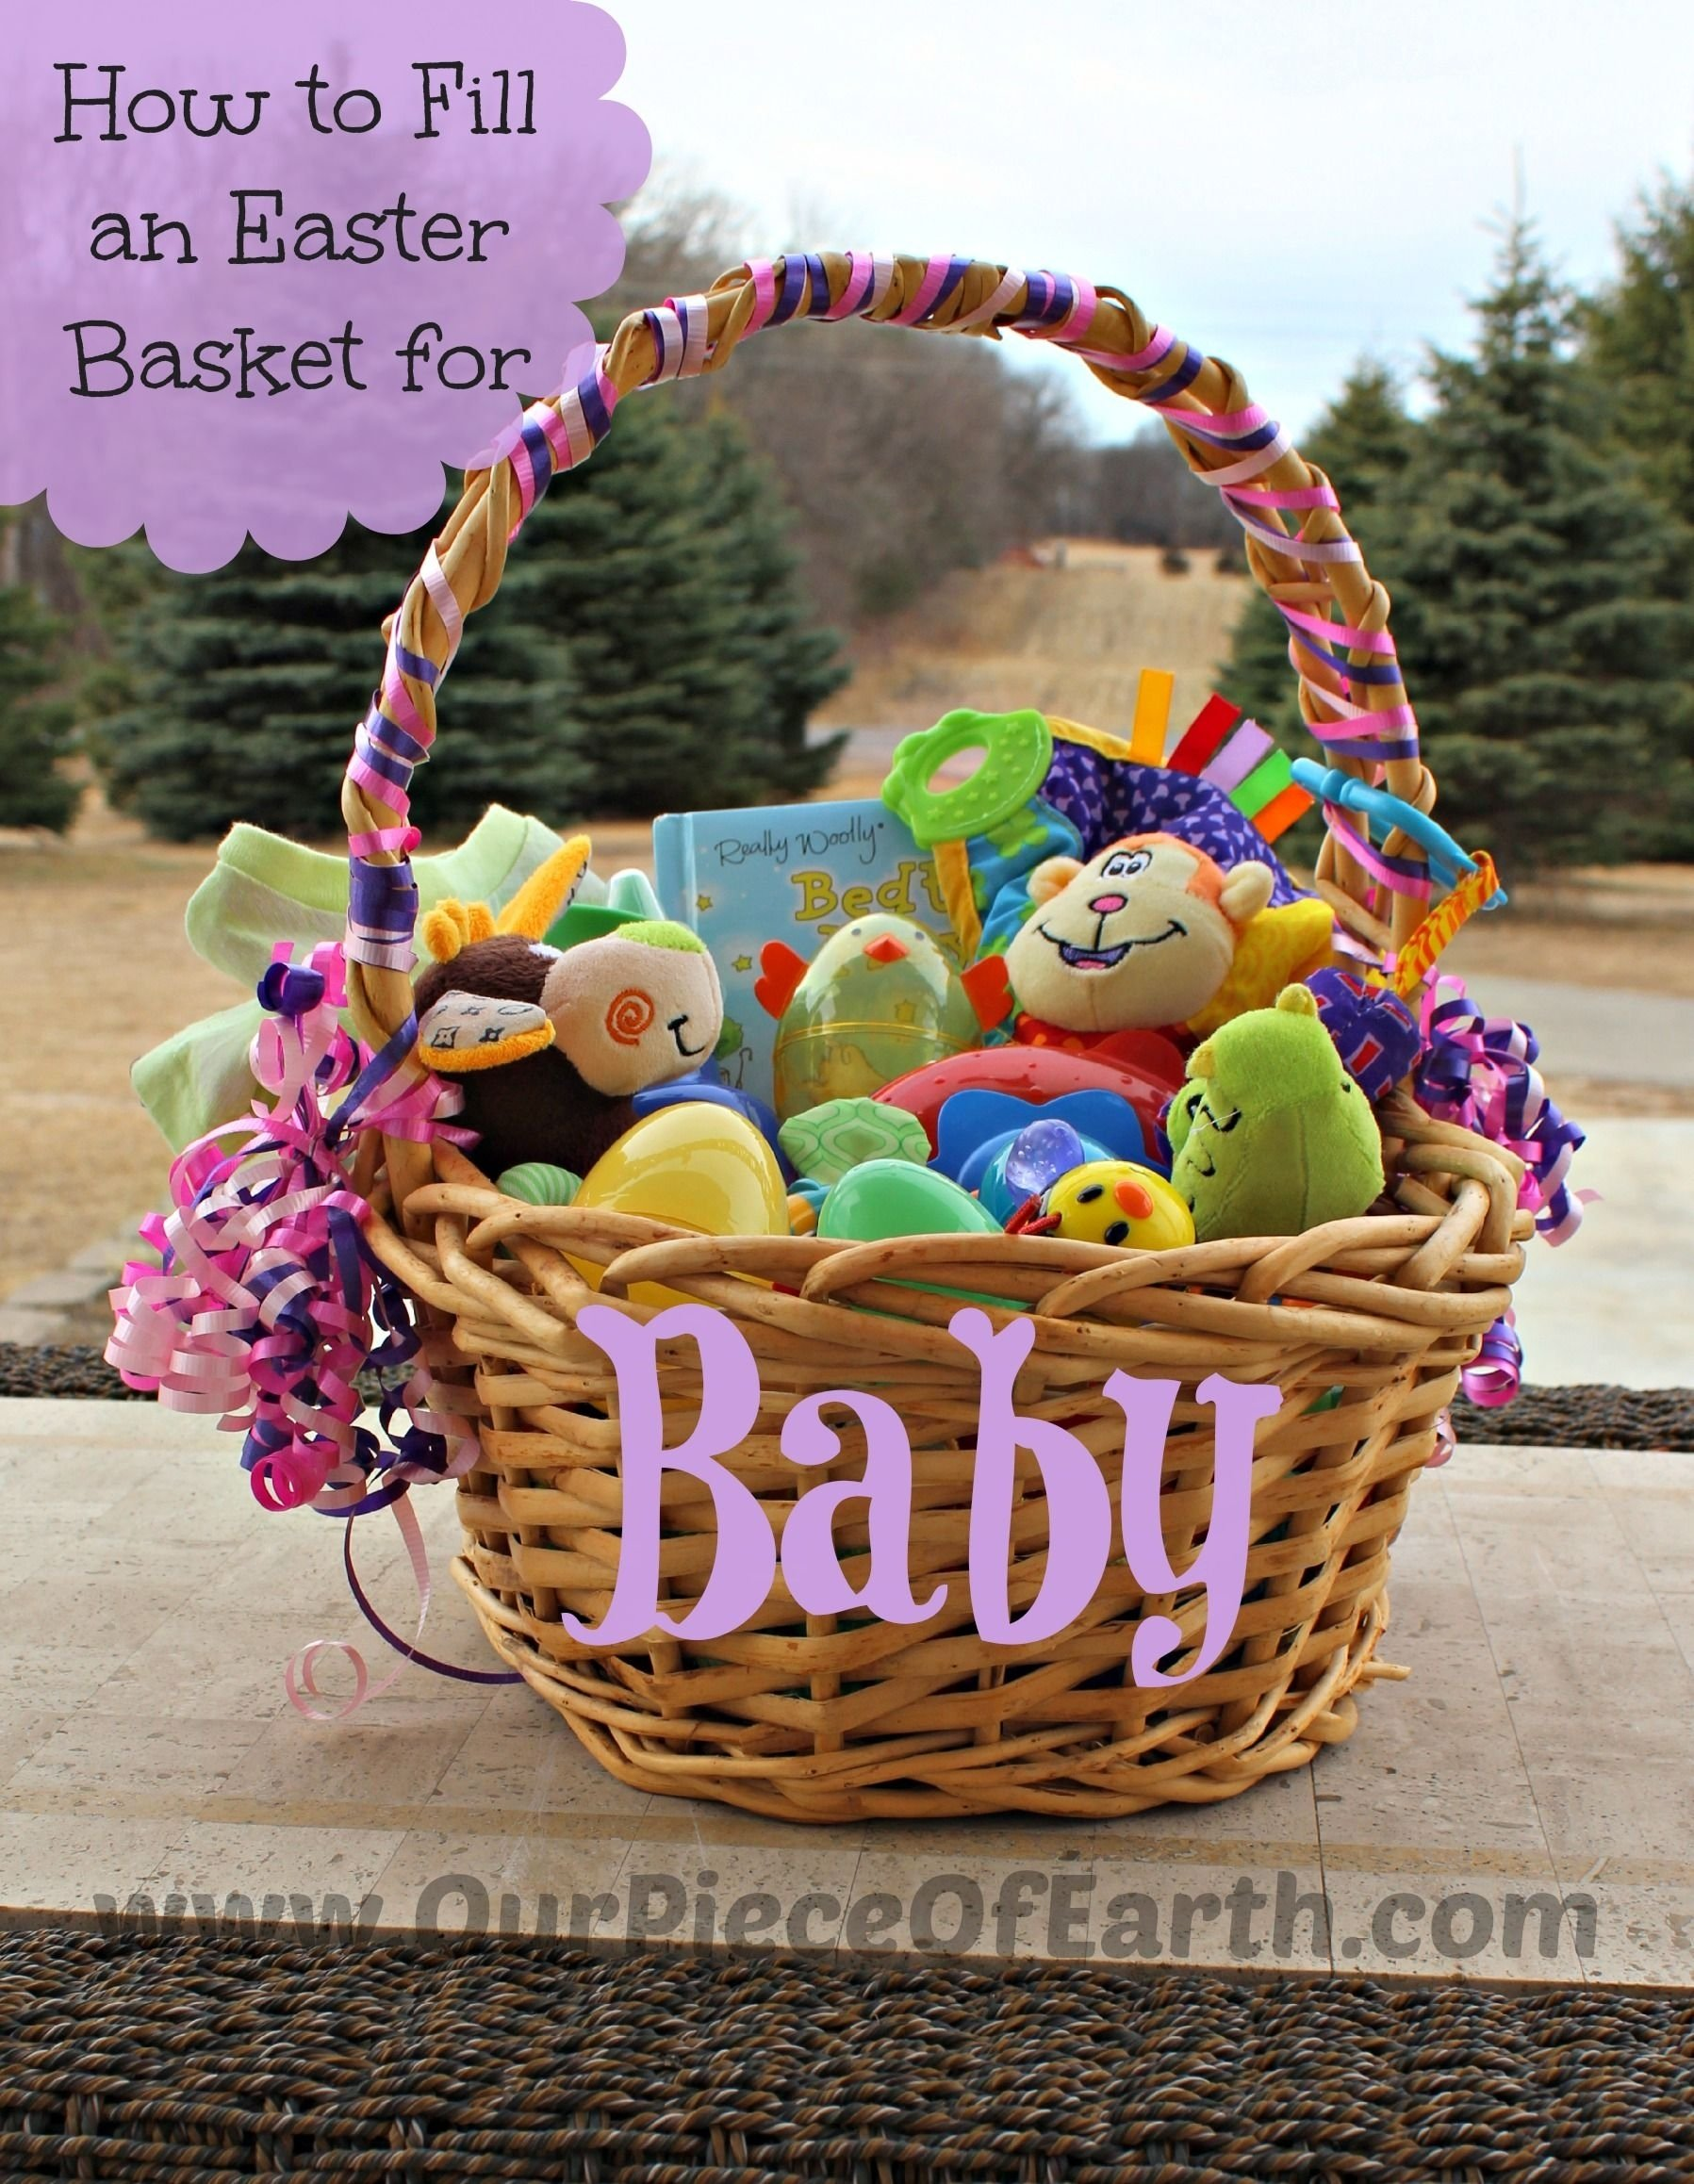 what to put in baby's easter basket | our piece of earth blog posts